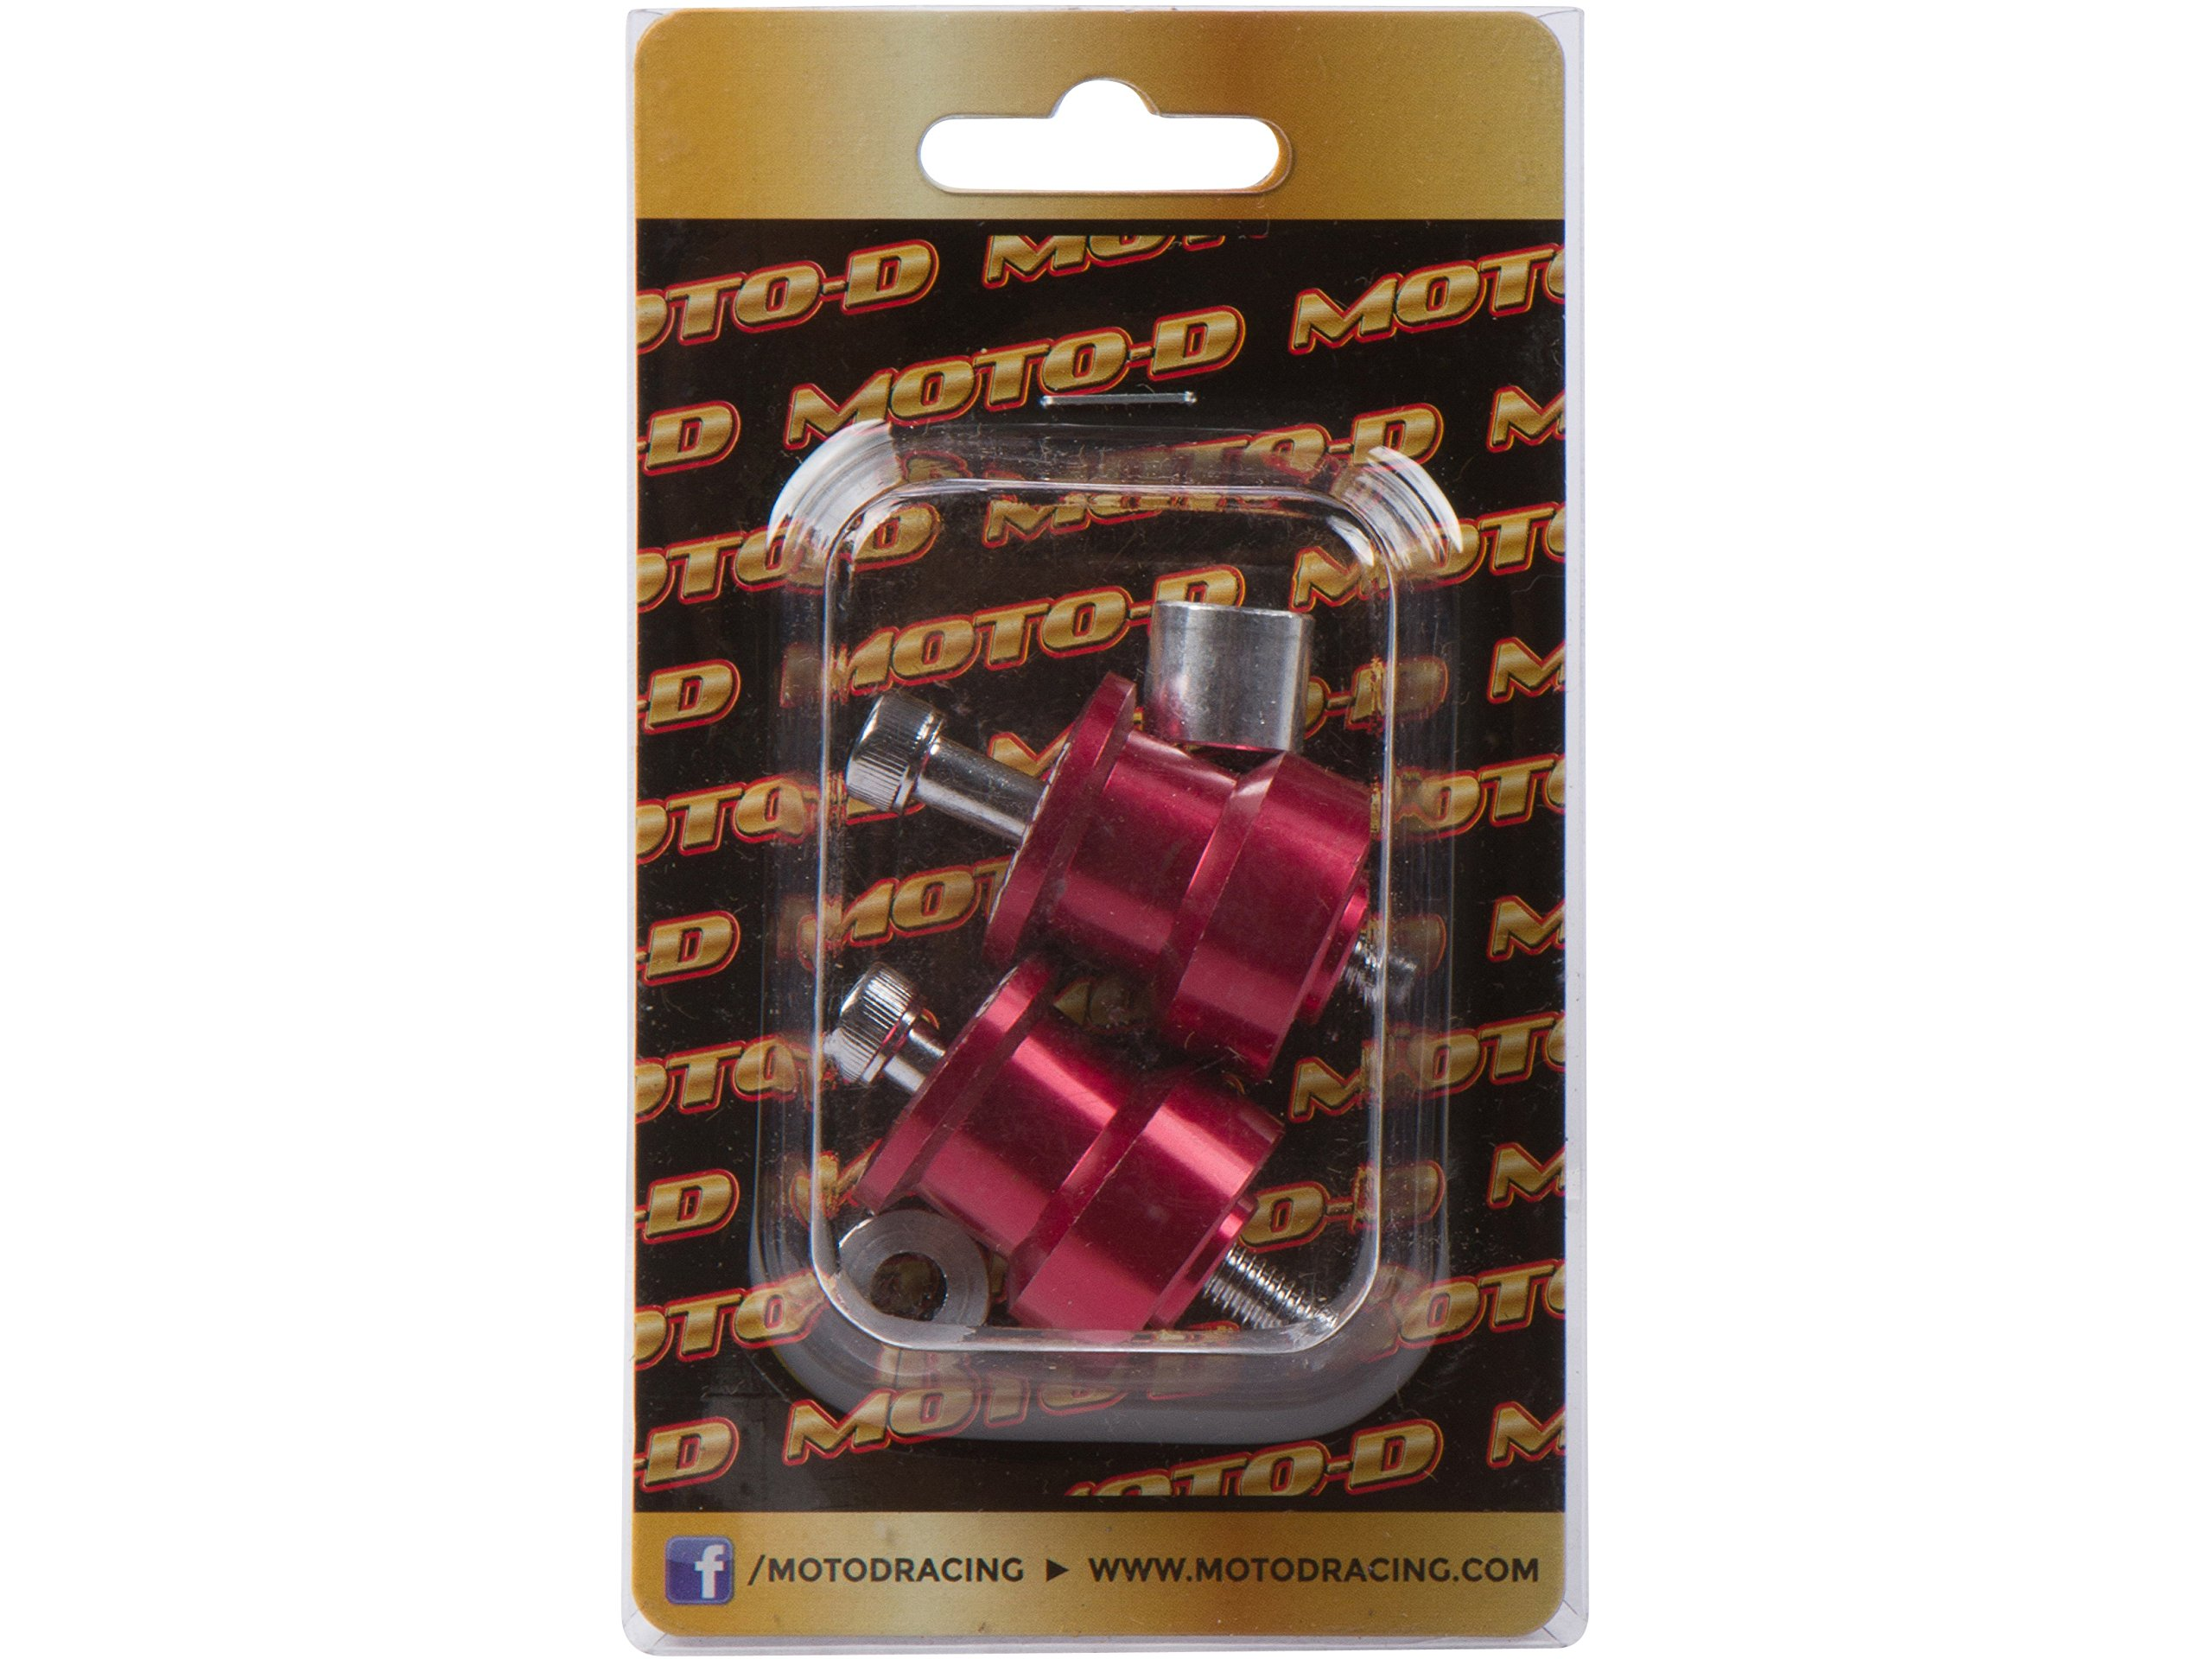 MOTO-D 8MM Swingarm Spools Red